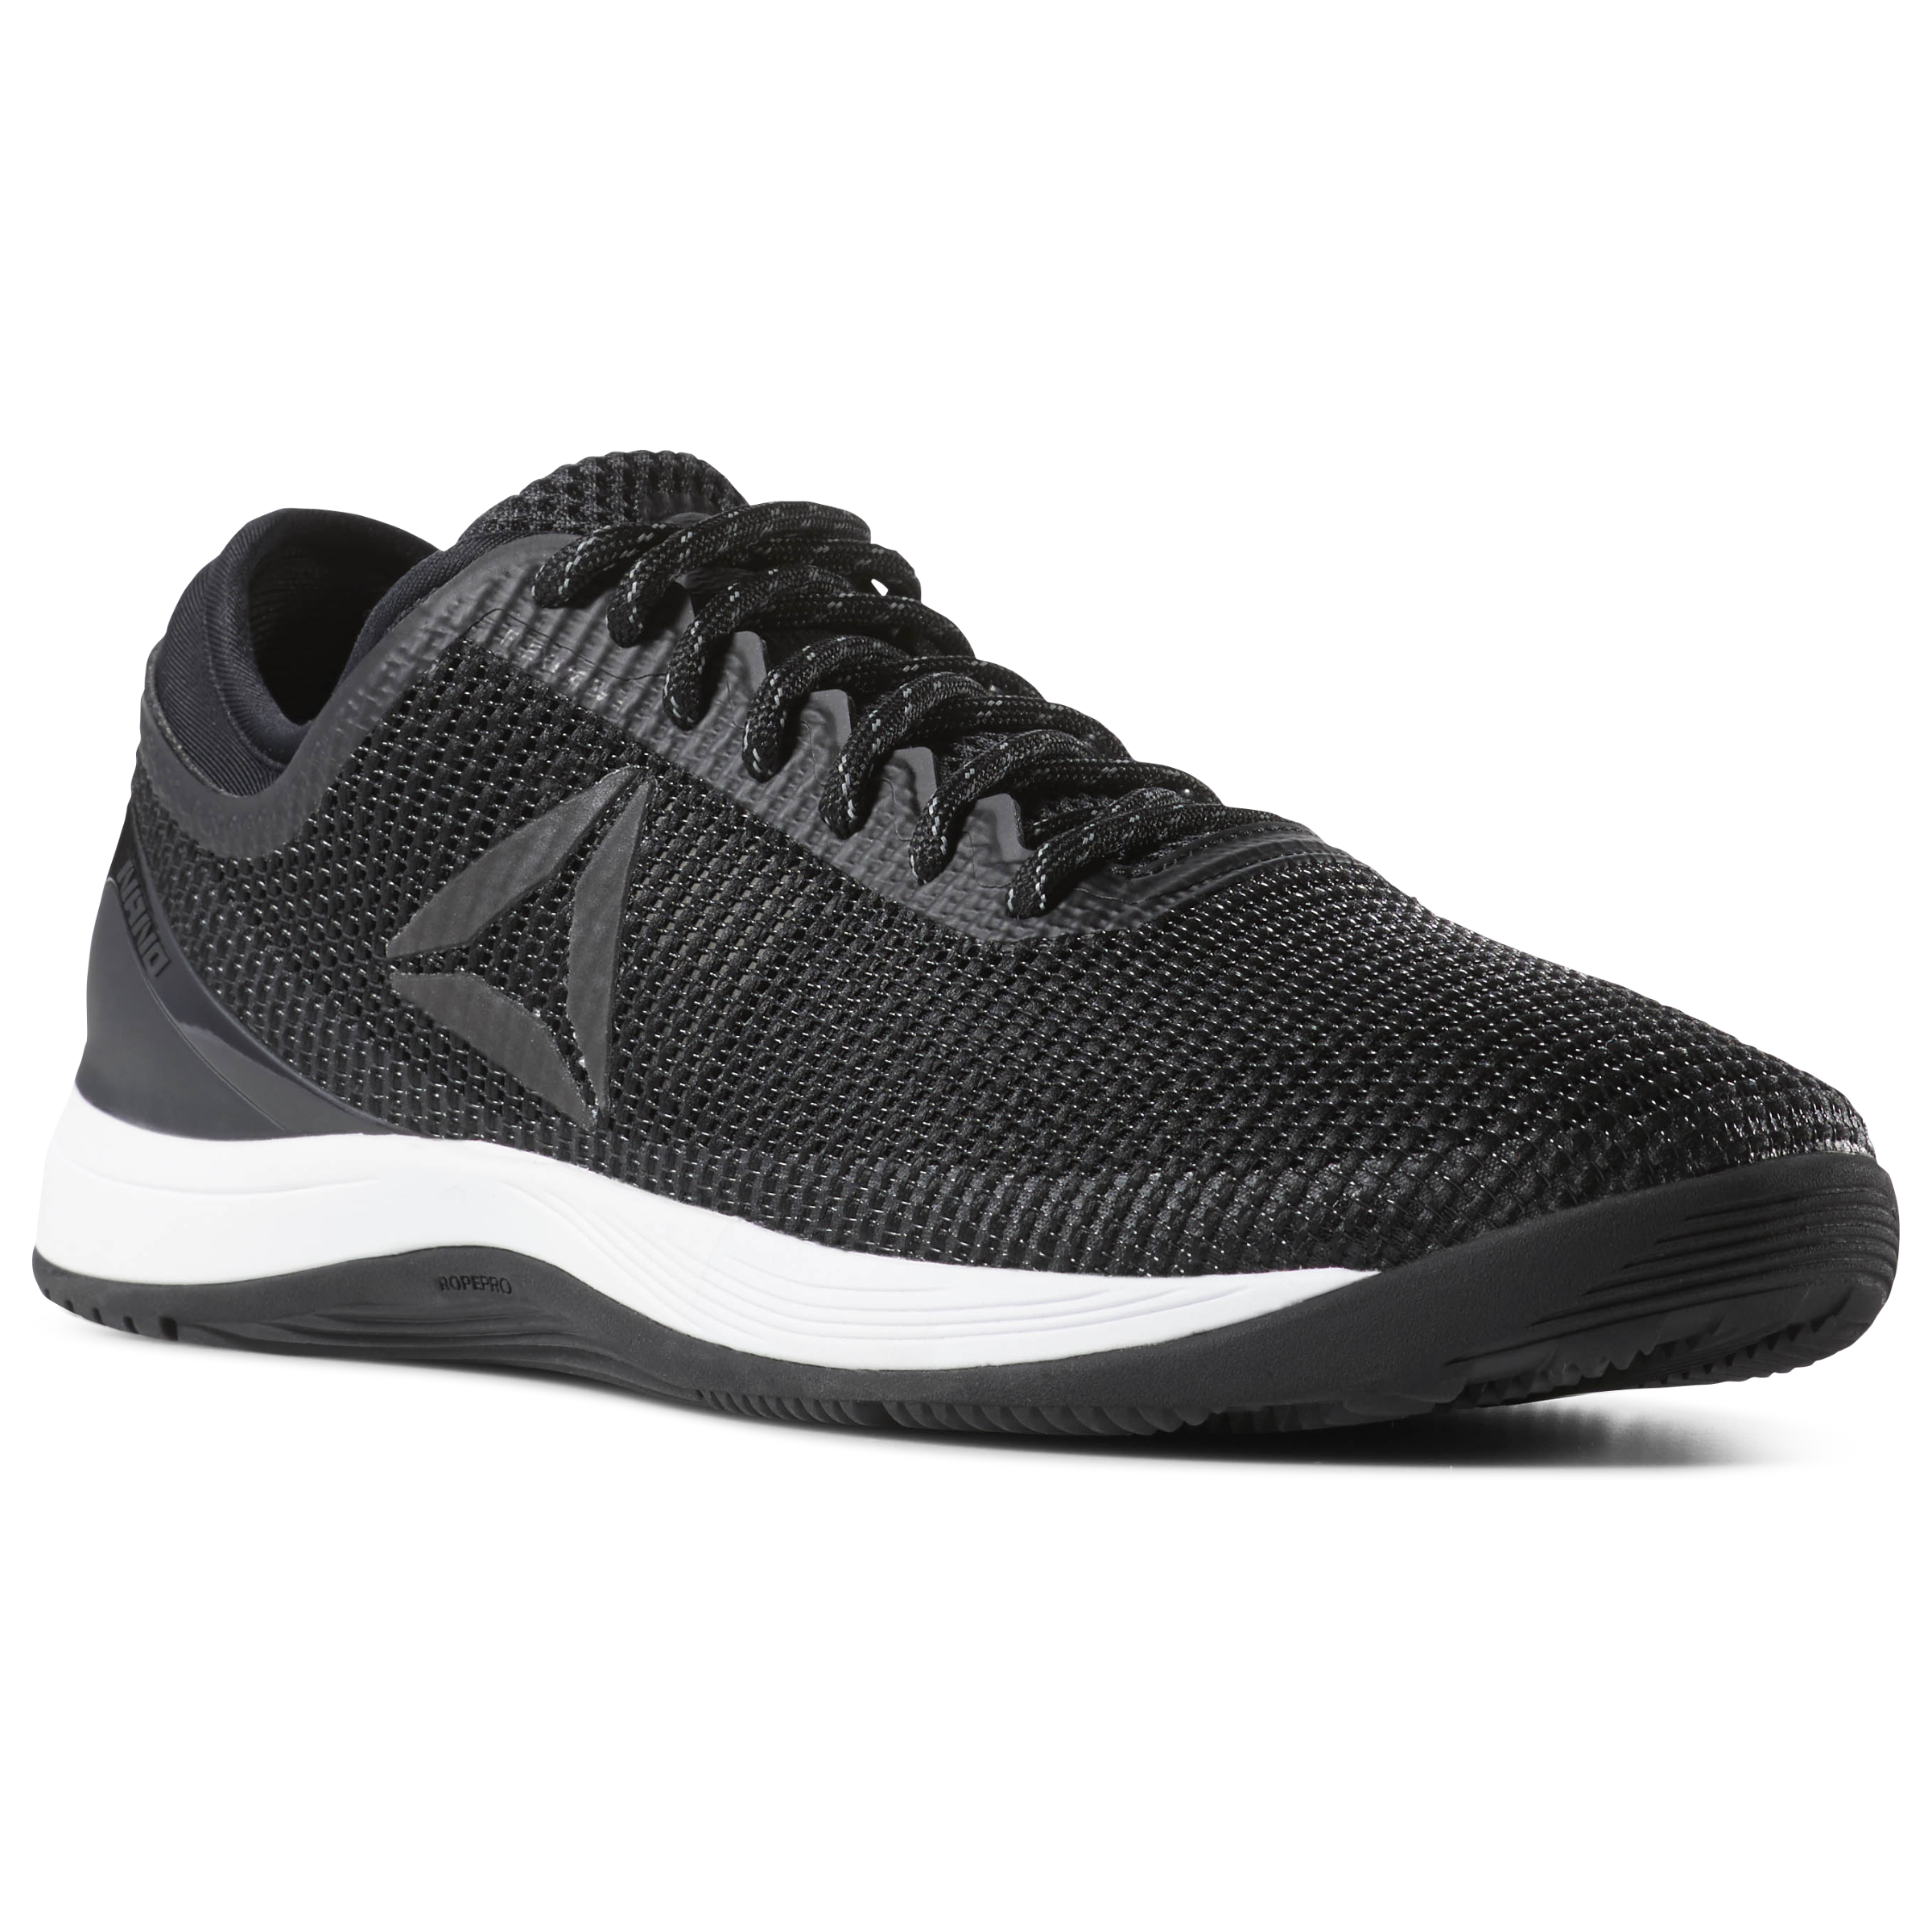 Reebok-CrossFit-Nano-8-Flexweave-Men-039-s-Shoes miniatura 37